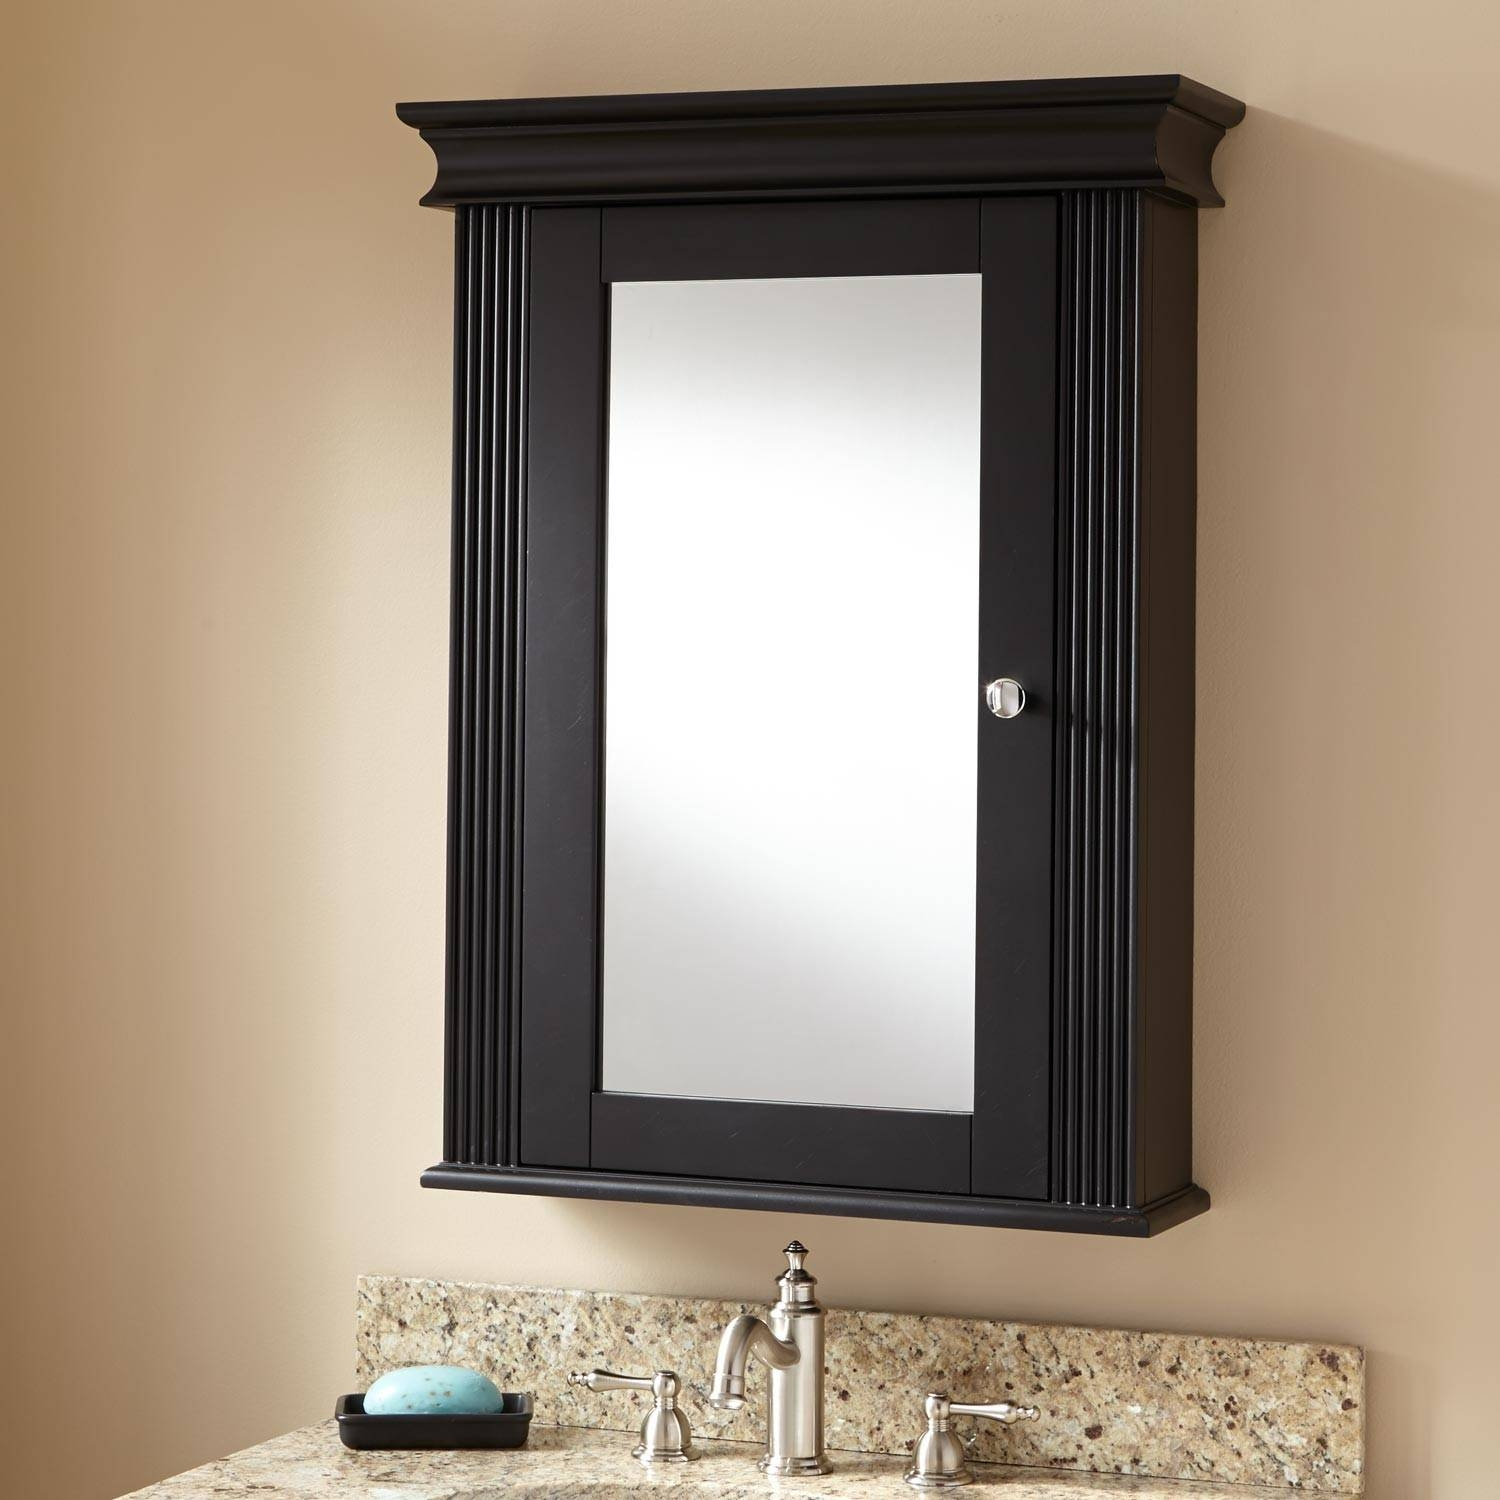 Bathroom Mirror Cabinet Bunnings 2016 Bathroom Ideas Designs intended for Black Cabinet Mirrors (Image 3 of 15)